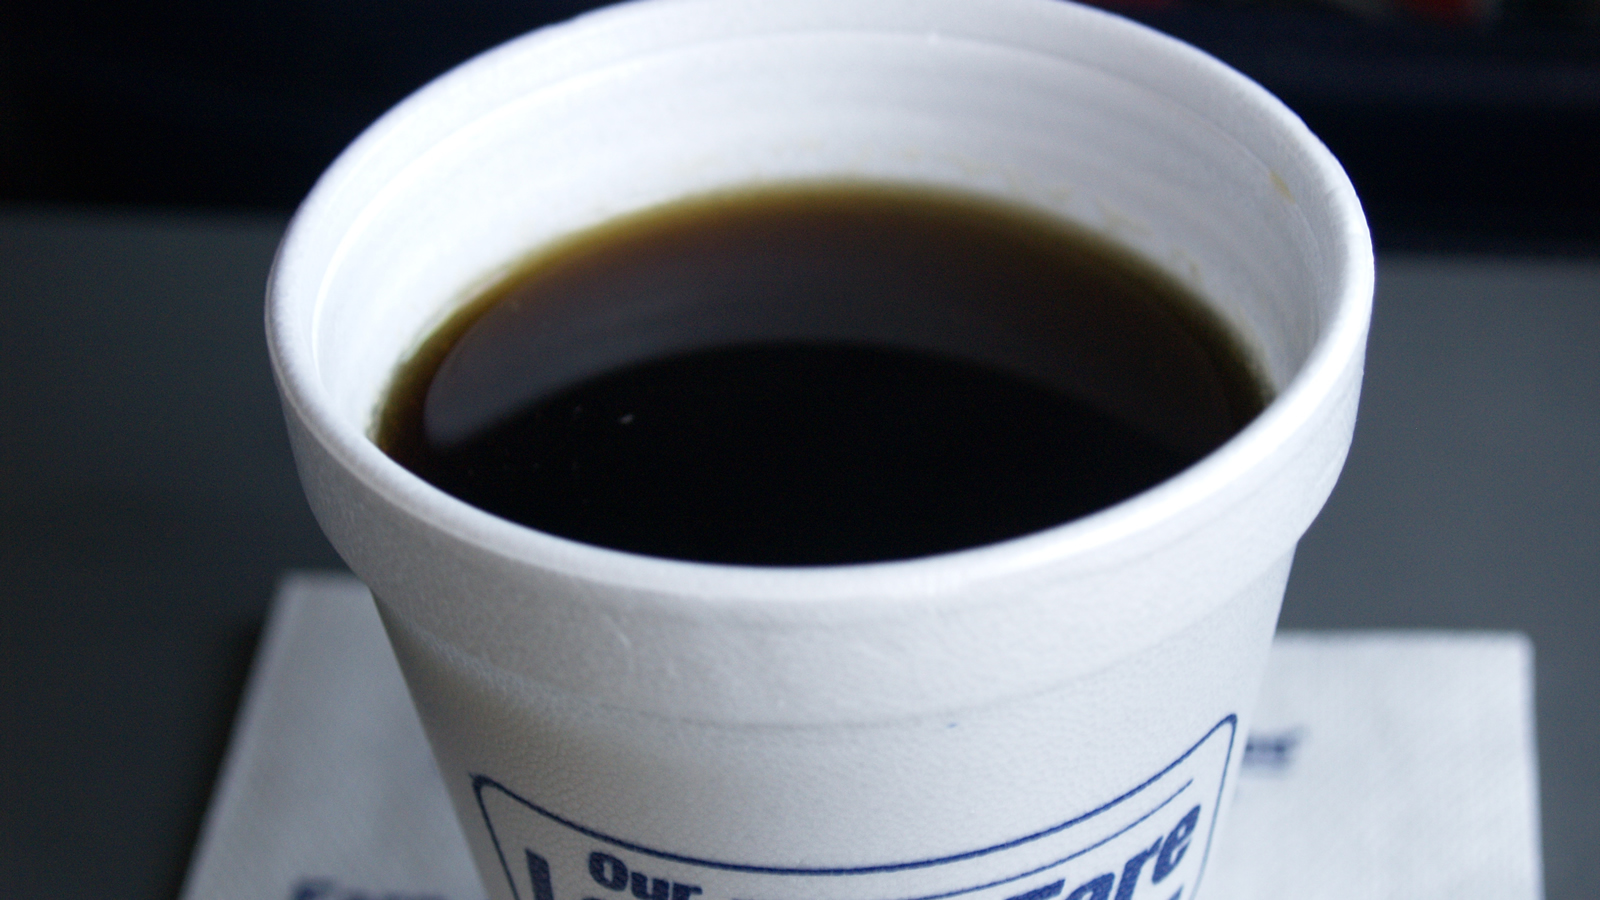 <h4>It's made with harmful chemicals</h4><p>Polystyrene is made using synthetic chemicals, which may leach out if they come in contact with hot, greasy or acidic food. Yes, they keep your coffee hot — but they may also add an unwanted dose of toxins to your drink.</p><em>cyclonebill, CC-BY-SA-2.0</em>